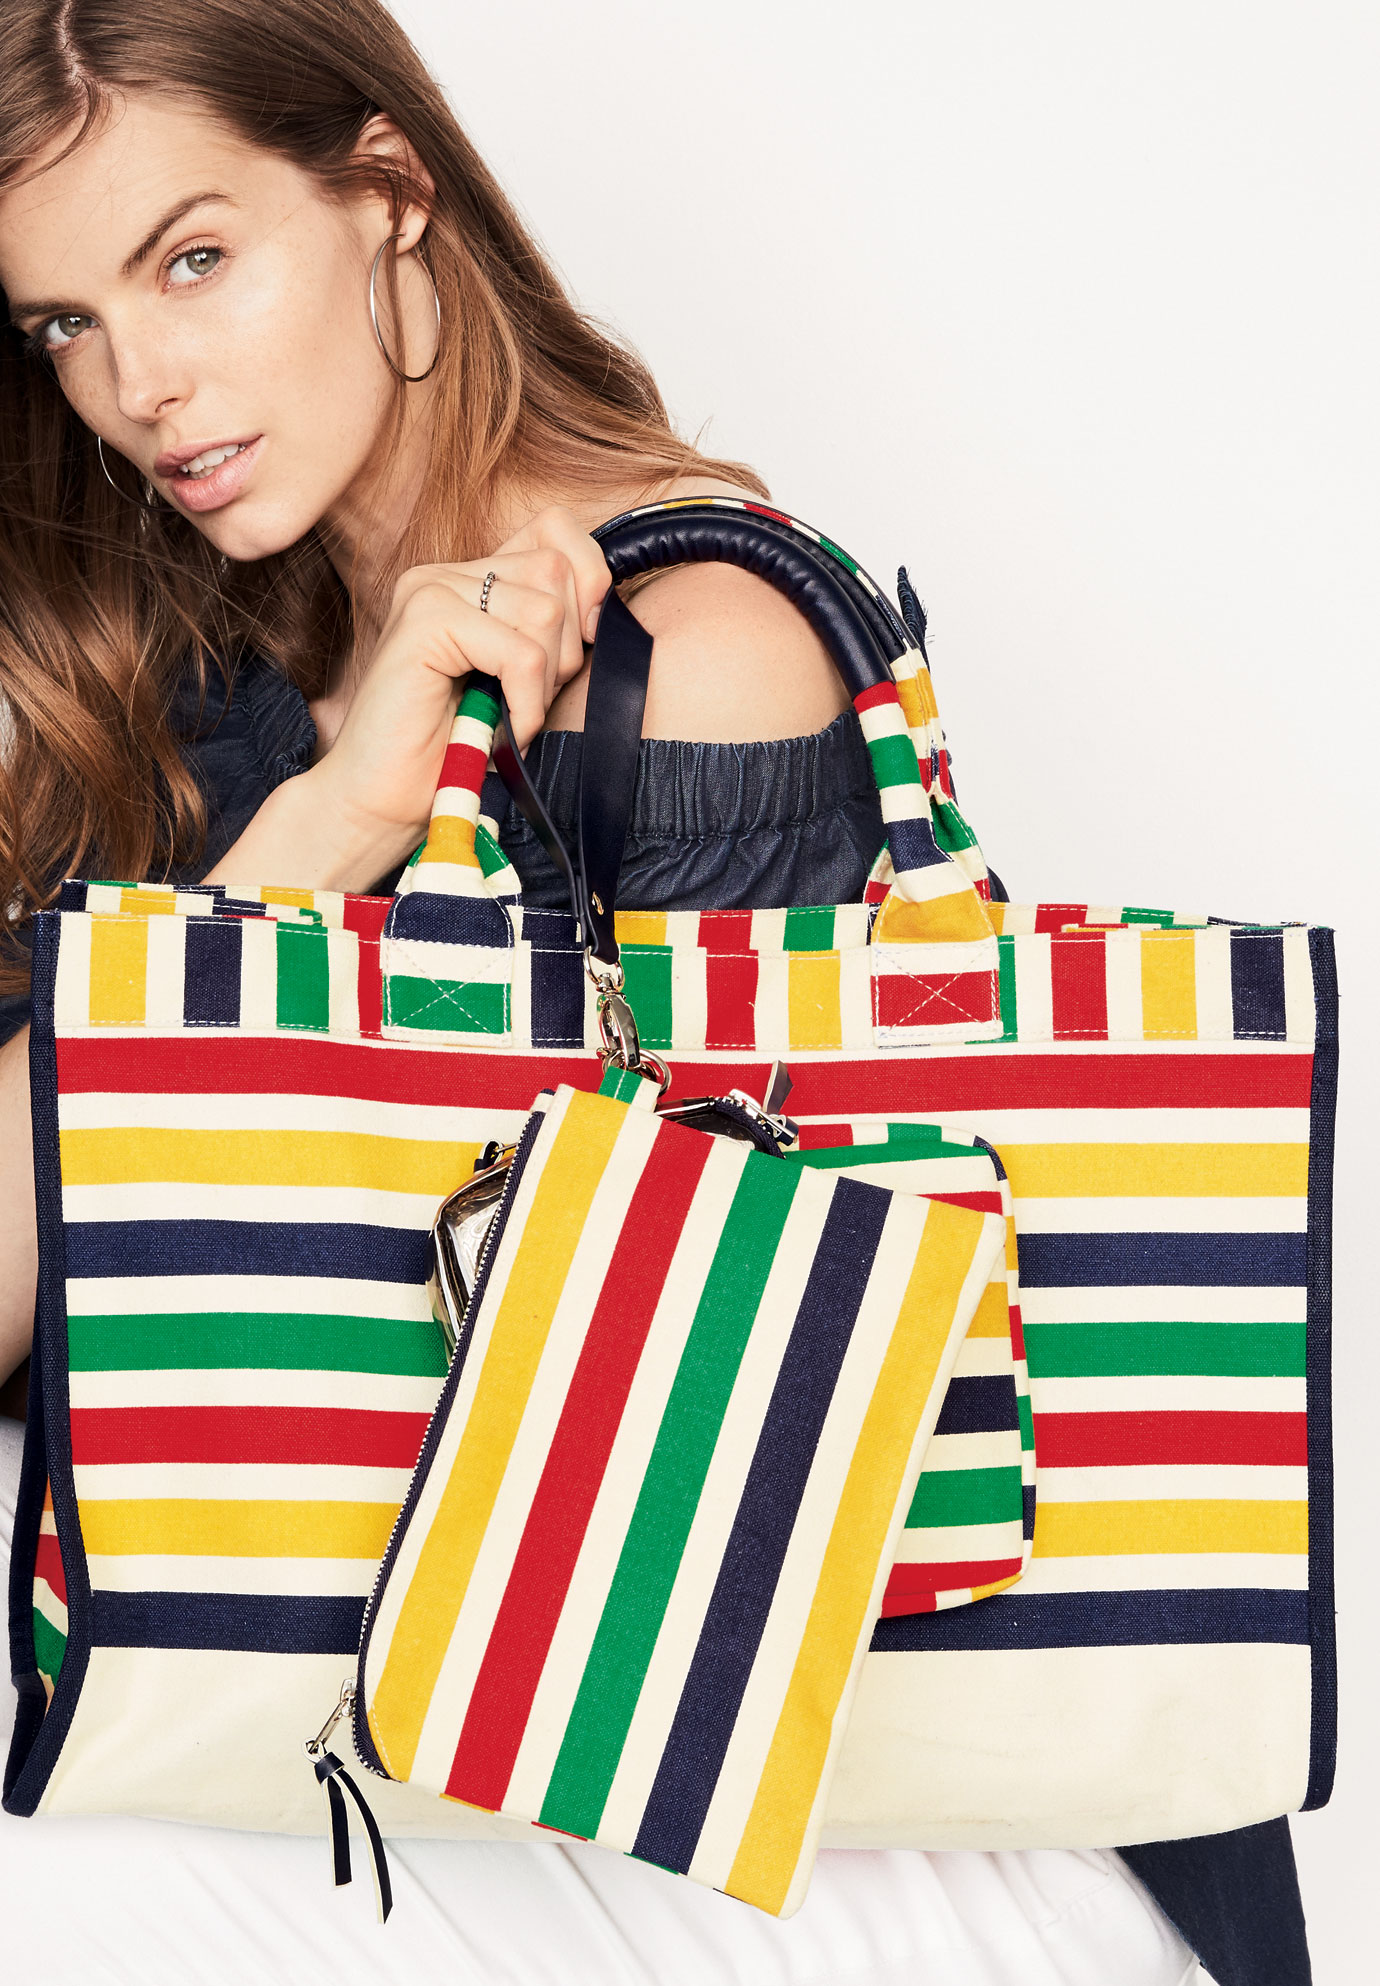 4-Piece Tote Set, MULTI STRIPE